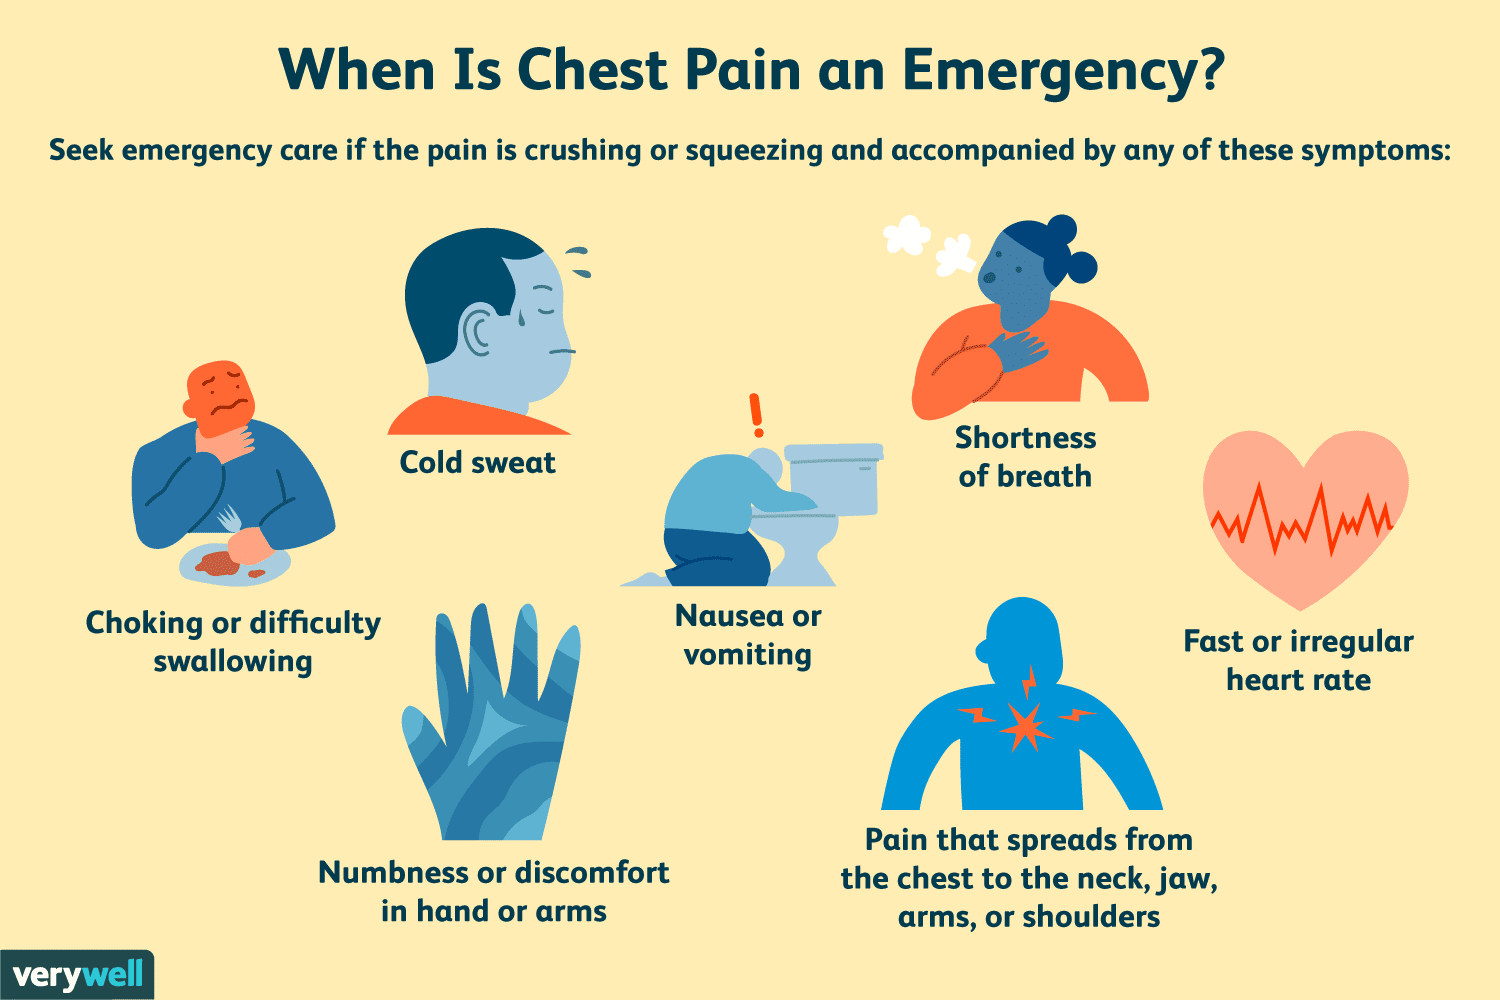 When is chest pain an emergency?